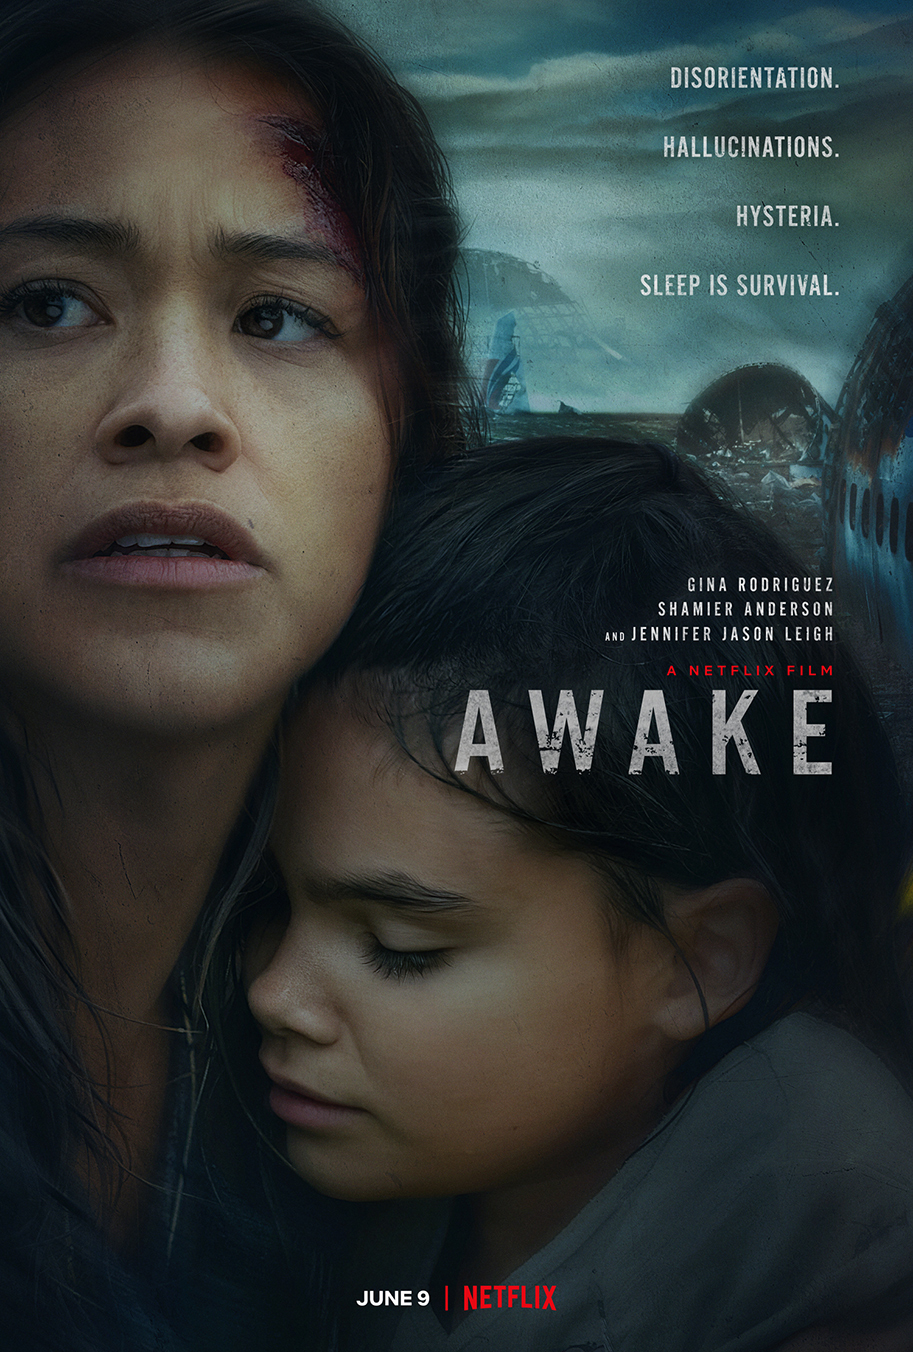 """Poster for """"Awake"""". Gina Rodriguez as Jill clutches her daughter Matilda to her chest."""